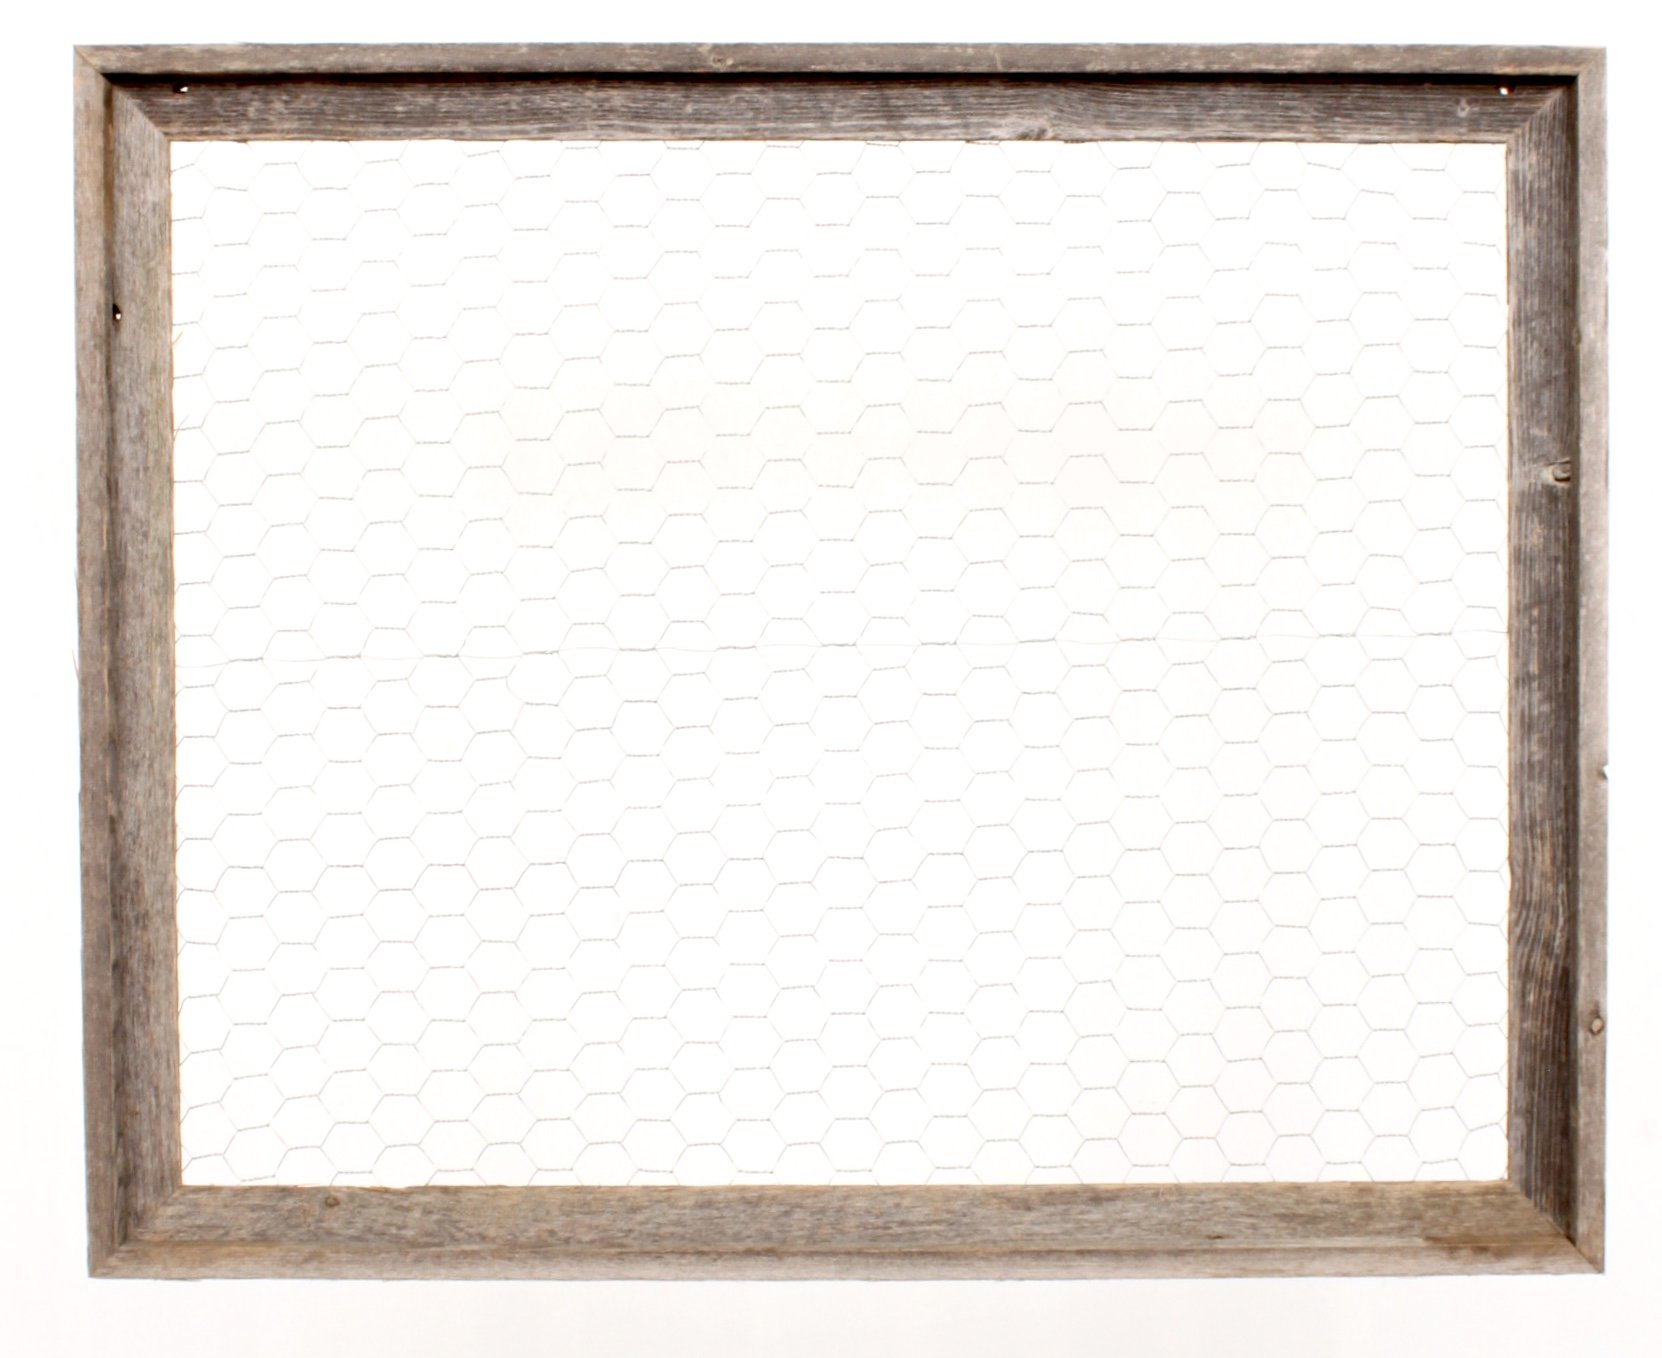 BarnwoodUSA | Chicken Wire Photo or Message Board, Jewelry Organizer - 10 Clothes Pins Included - 100% Up-Cycled Reclaimed Wood Frame (24 x 28 Frame) by BarnwoodUSA